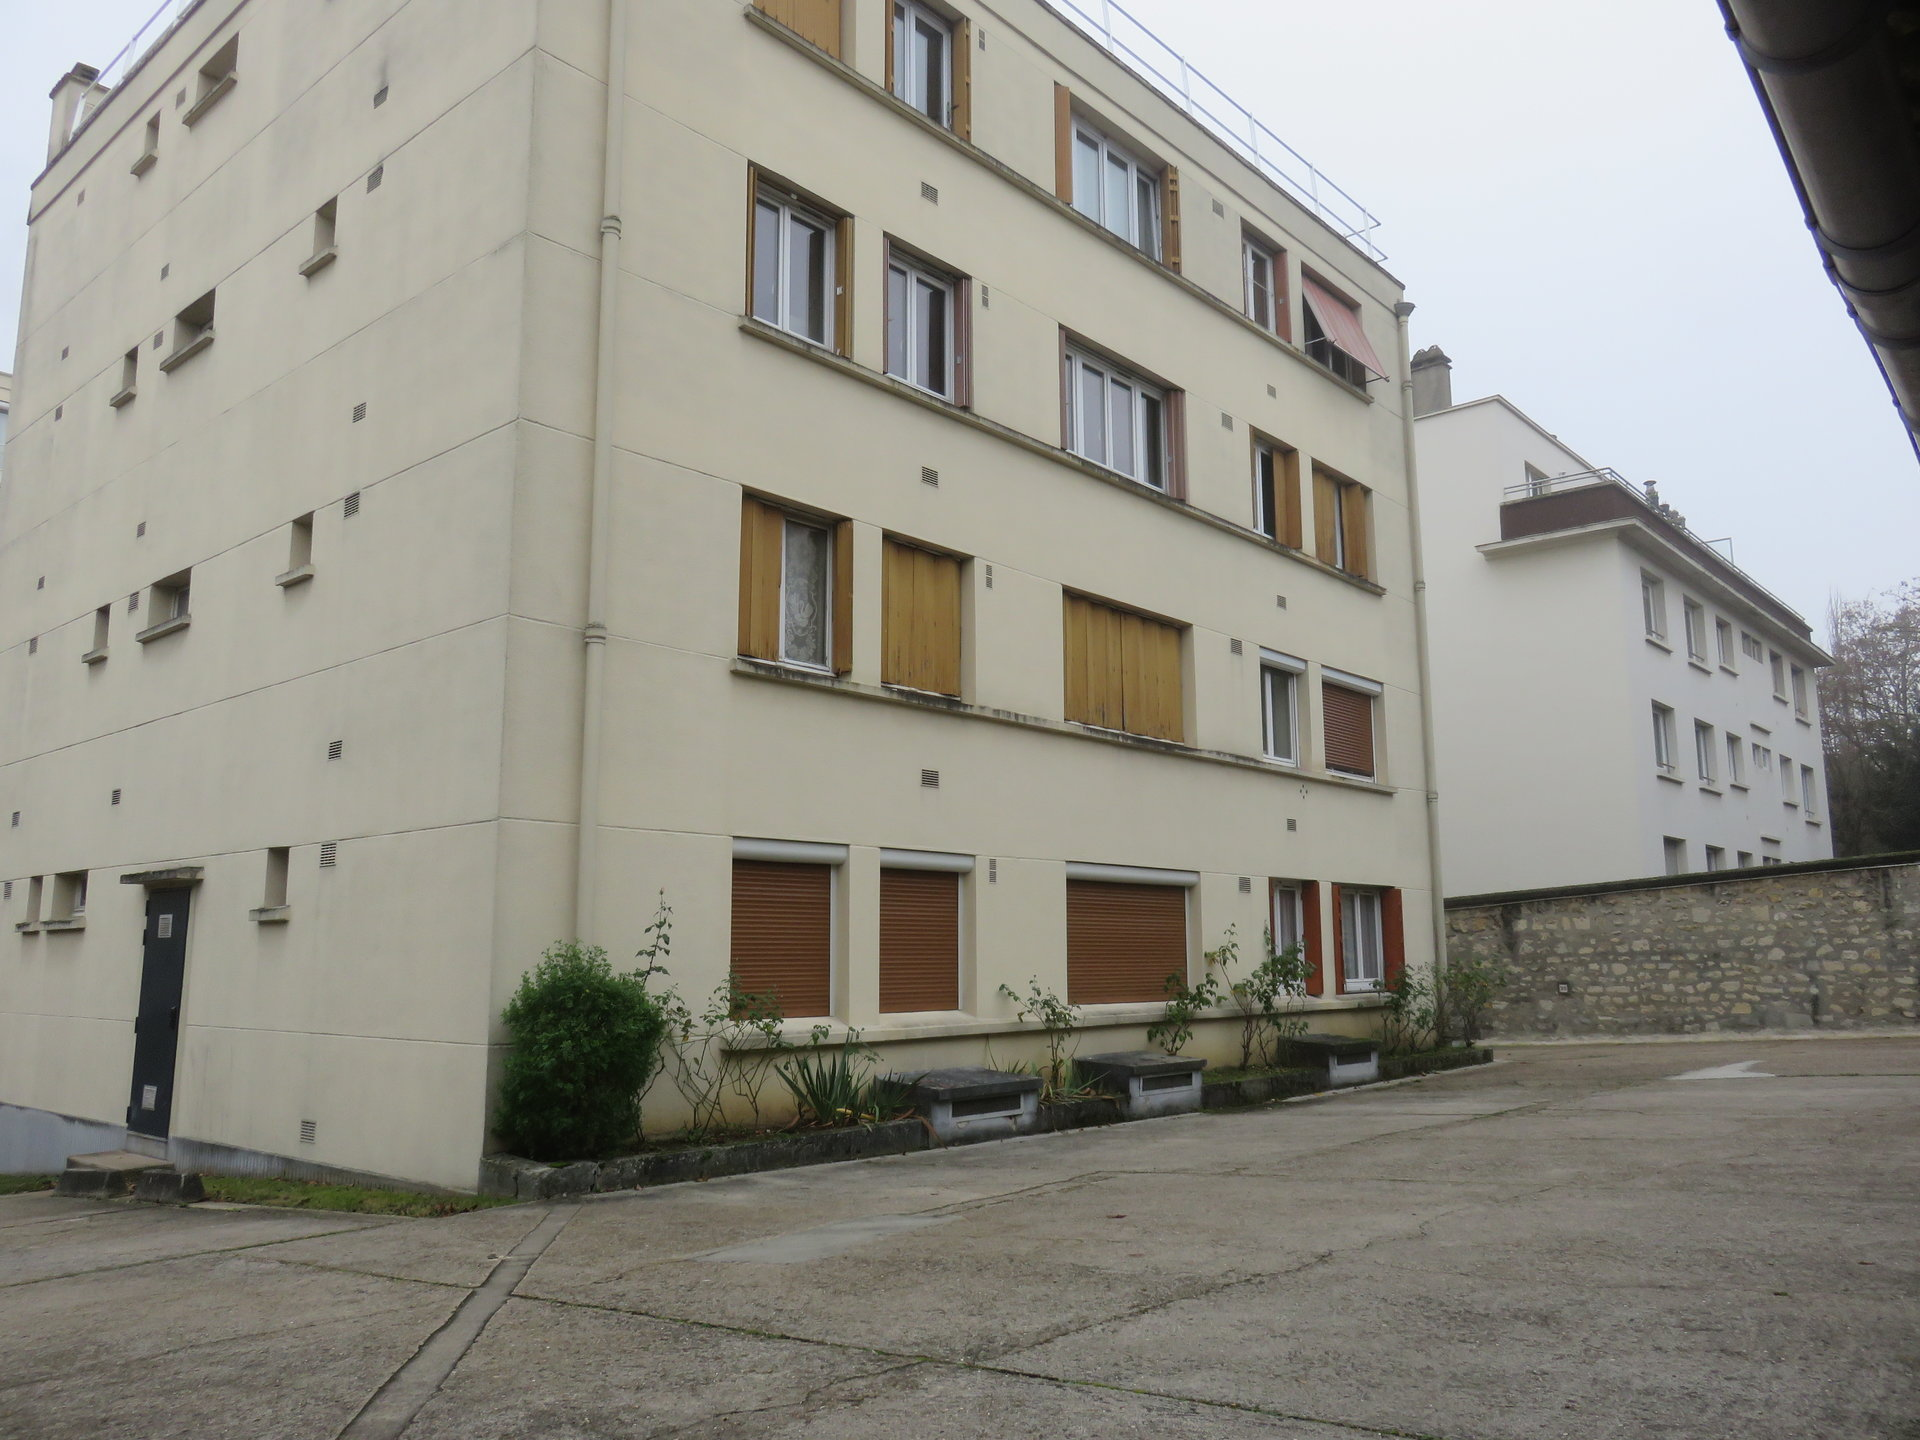 CLAMART CENTRE - GARE :